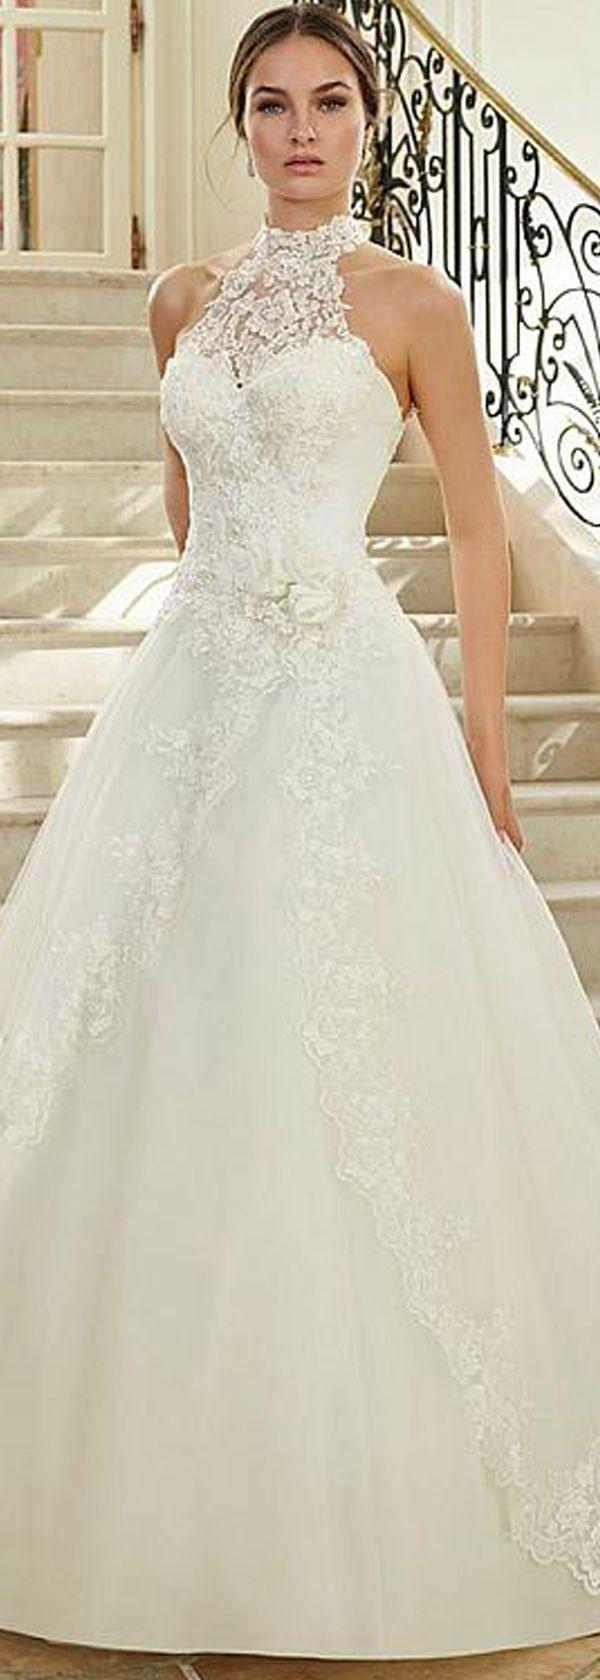 [188.40]  Wonderful tulle a-line bridal gown with pearls lace applique & handmade flower